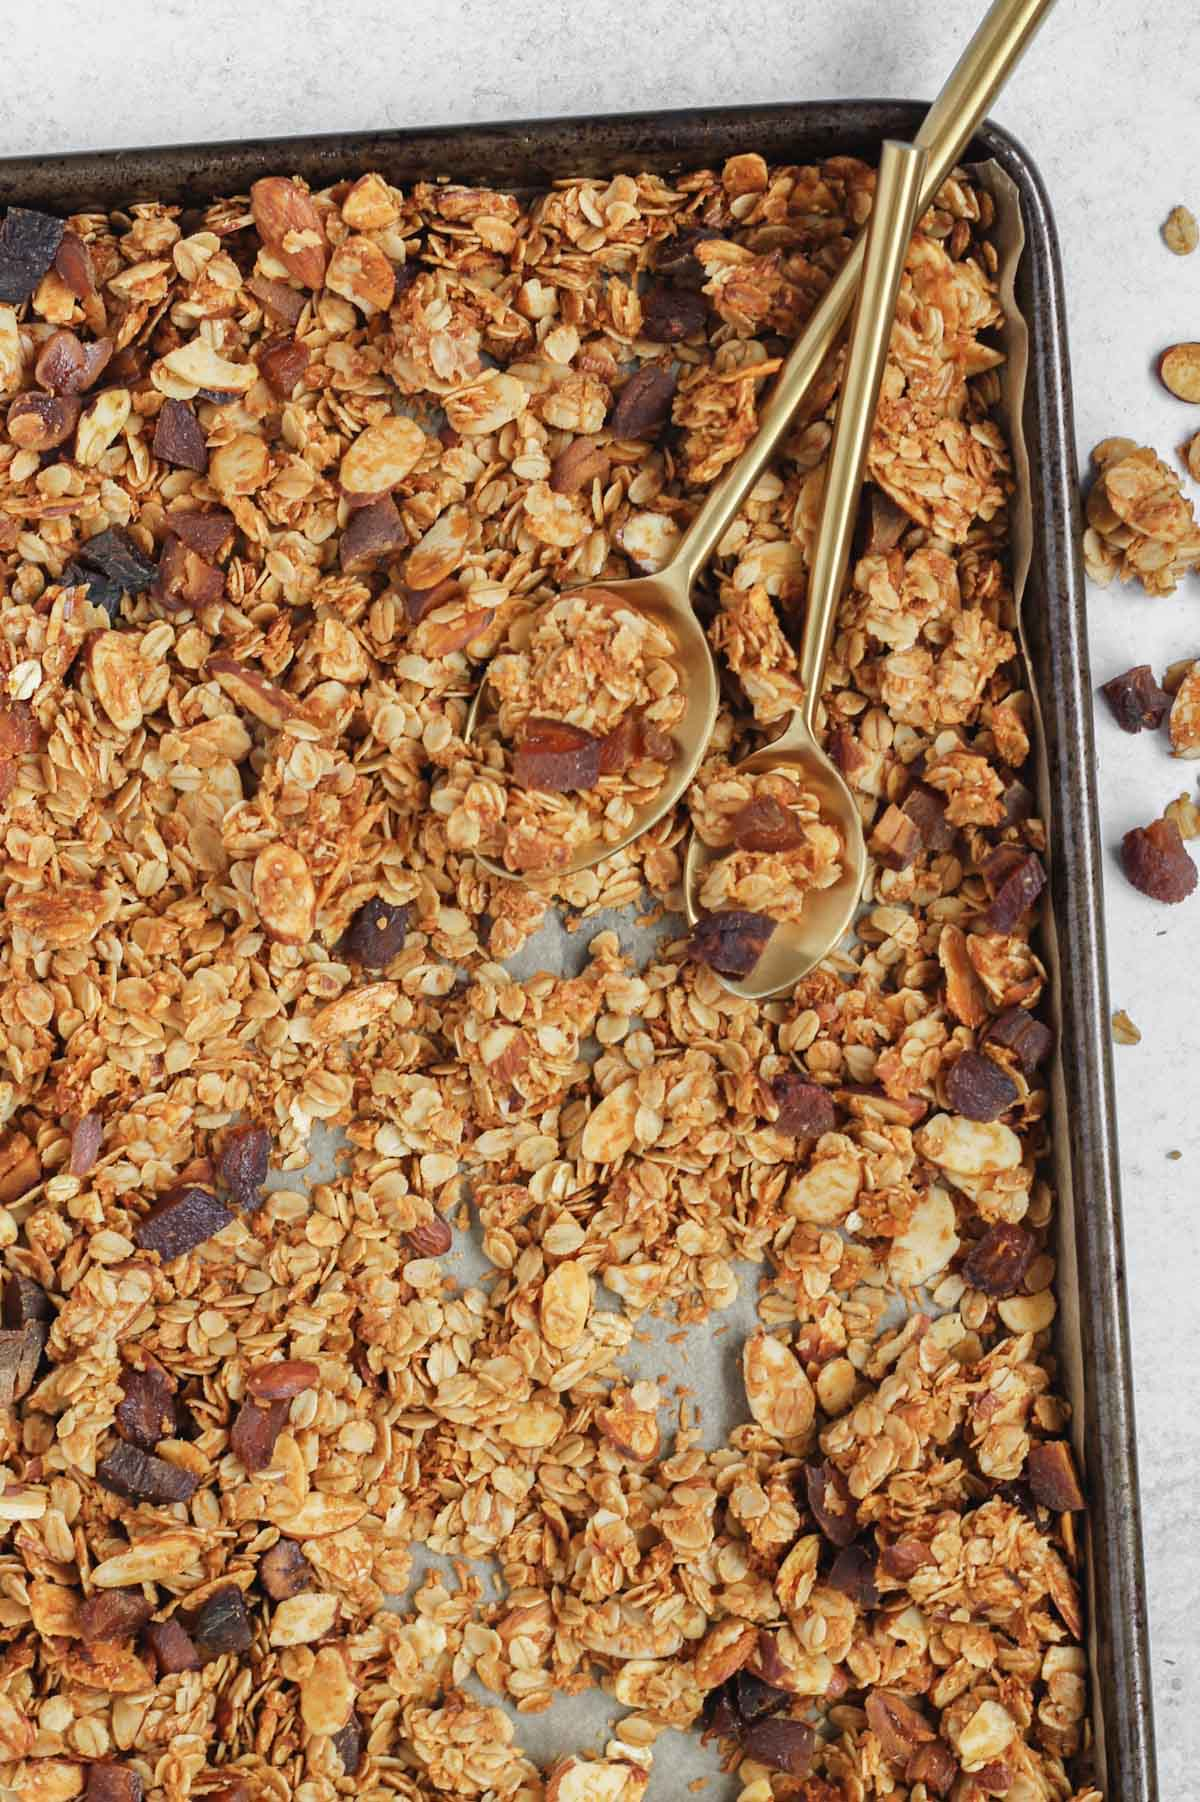 cooked granola on baking sheet